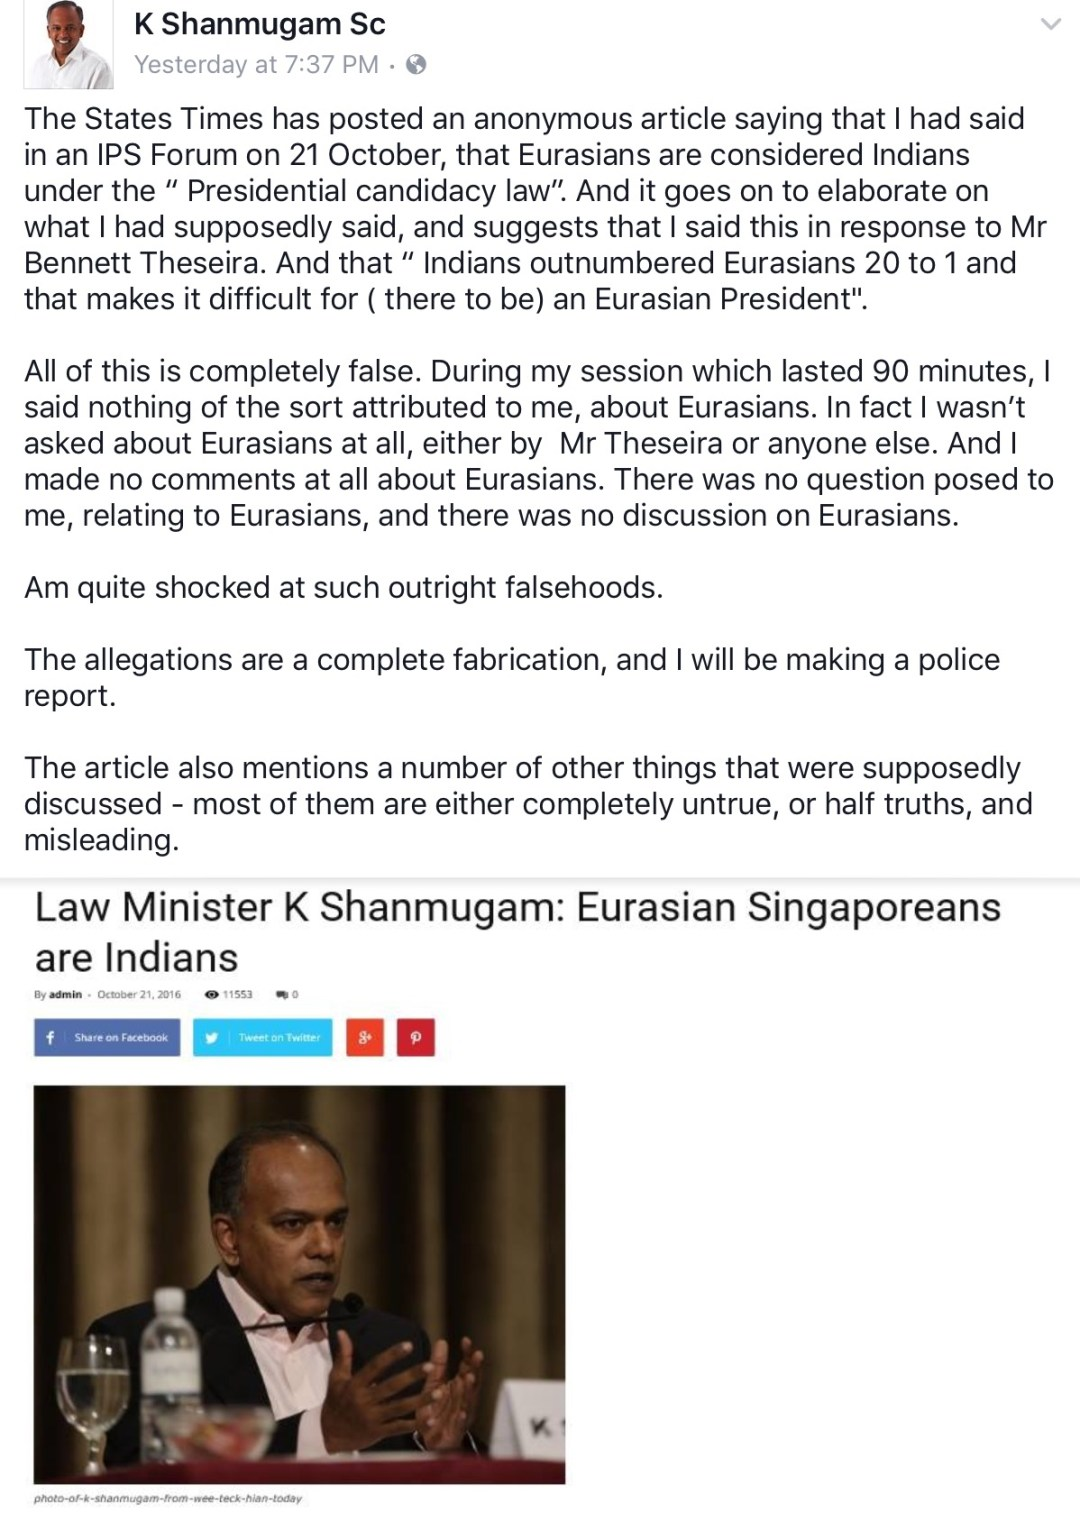 Screenshot from Minister Shanmugam's Facebook Page